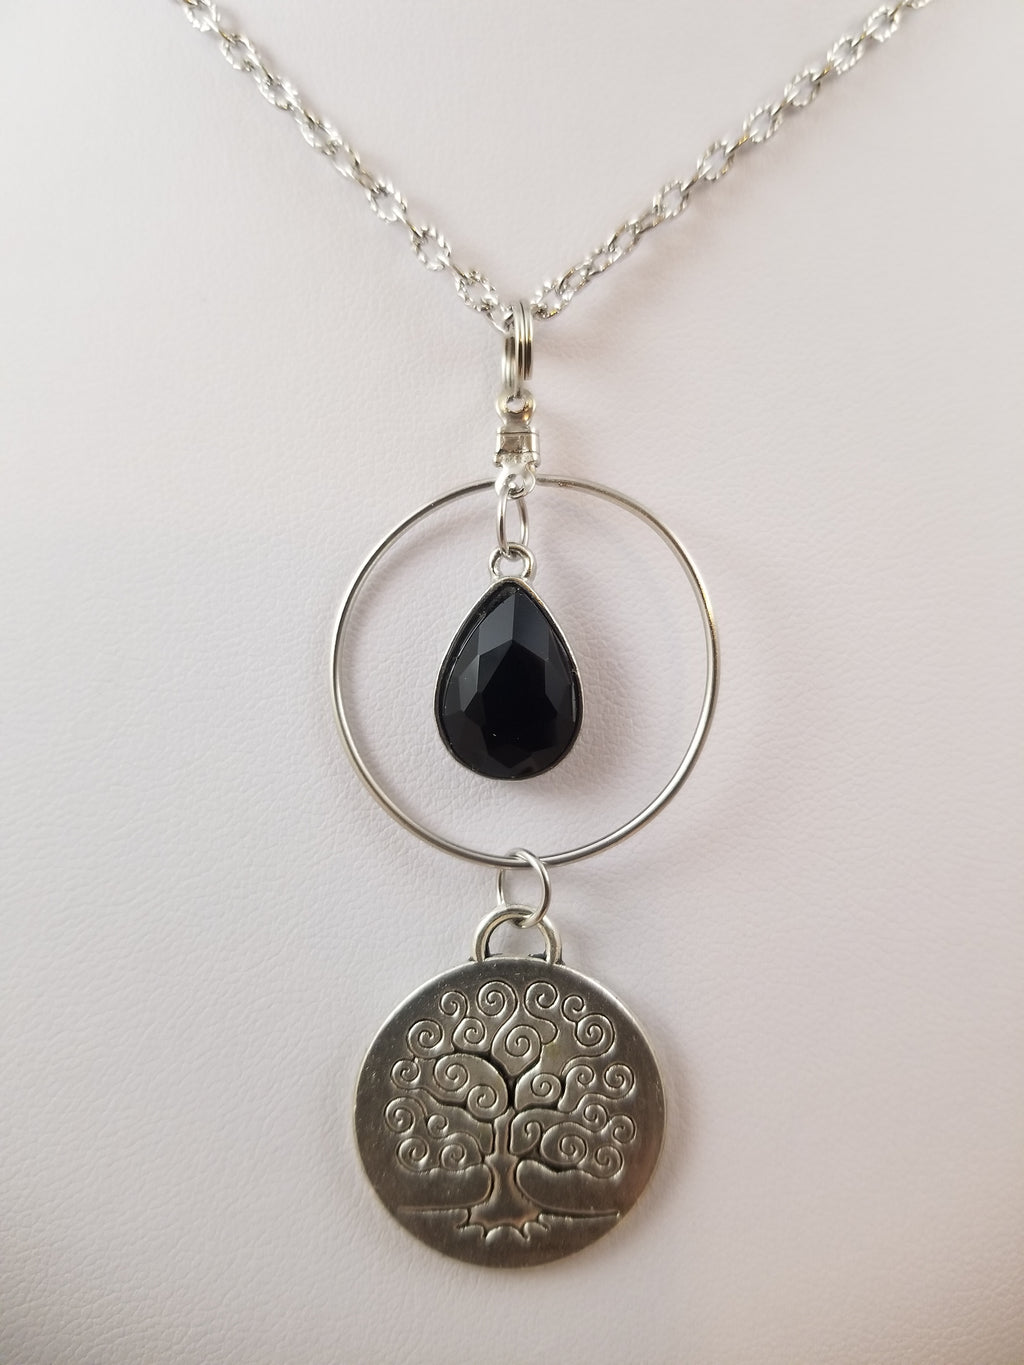 Midnight Tree Simply Charming Necklace